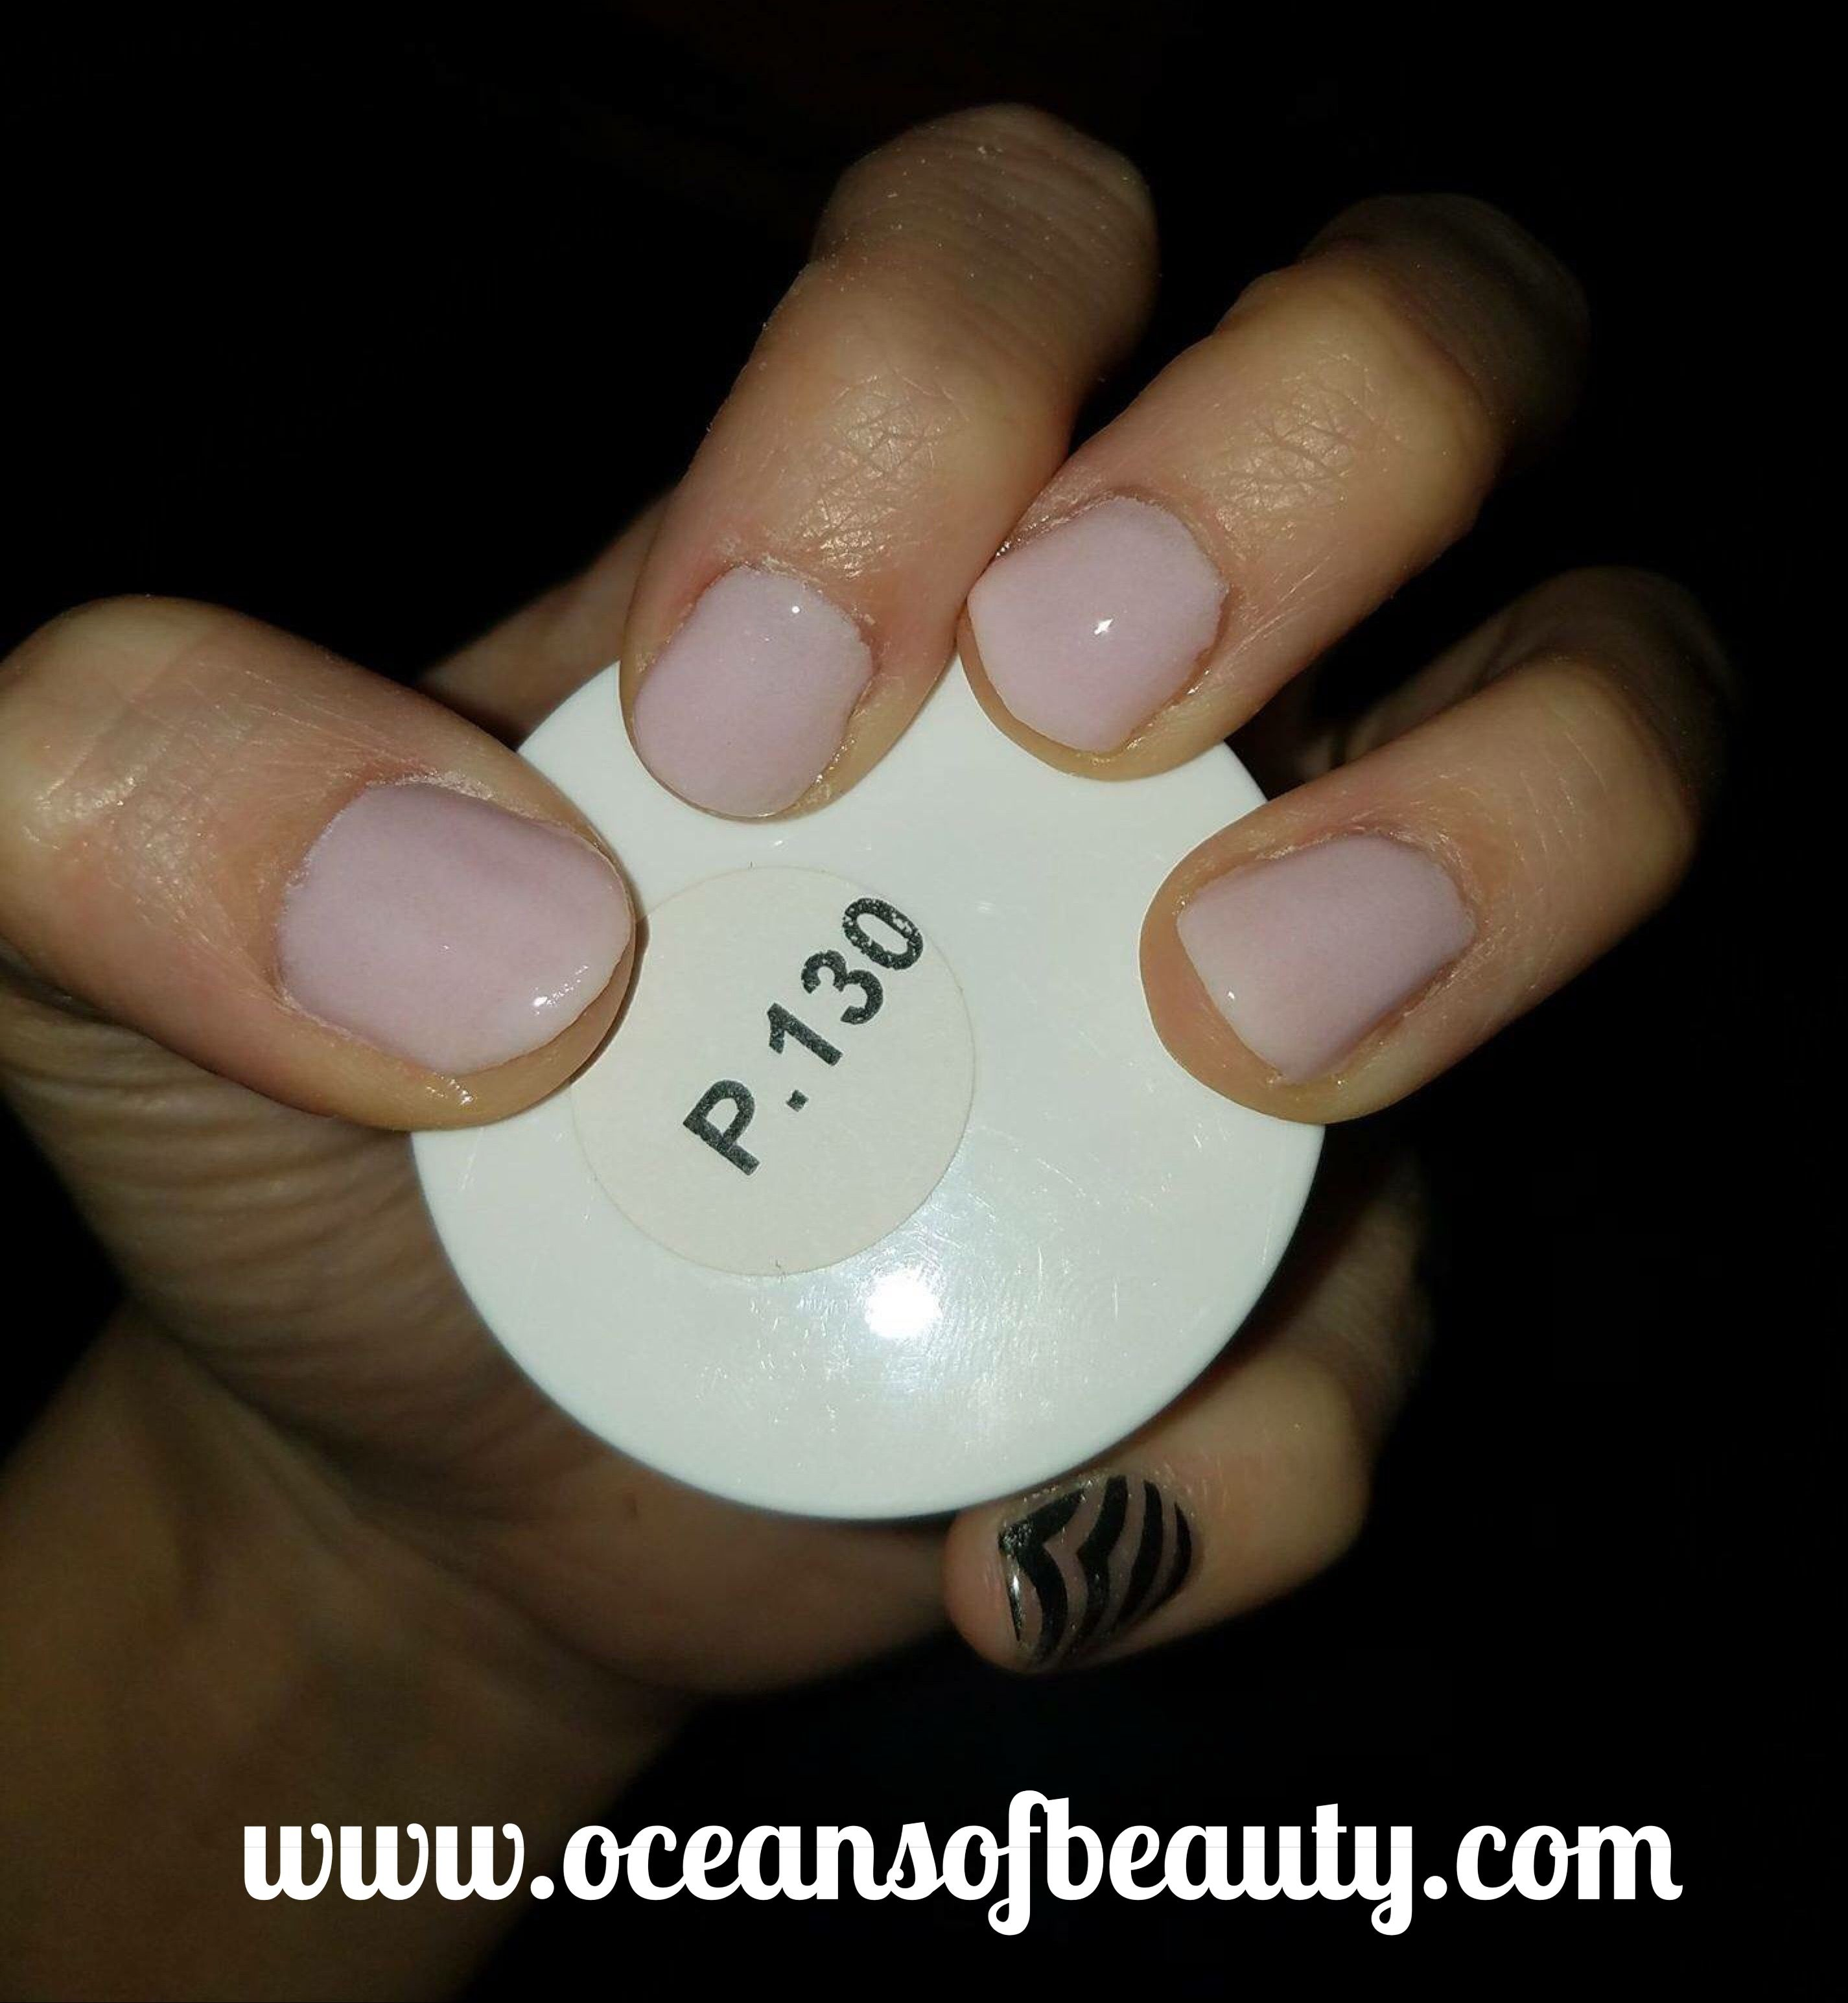 P.130 EZdip Gel Powder. DIY EZ Dip. No lamps needed, lasts 2-3 weeks ...